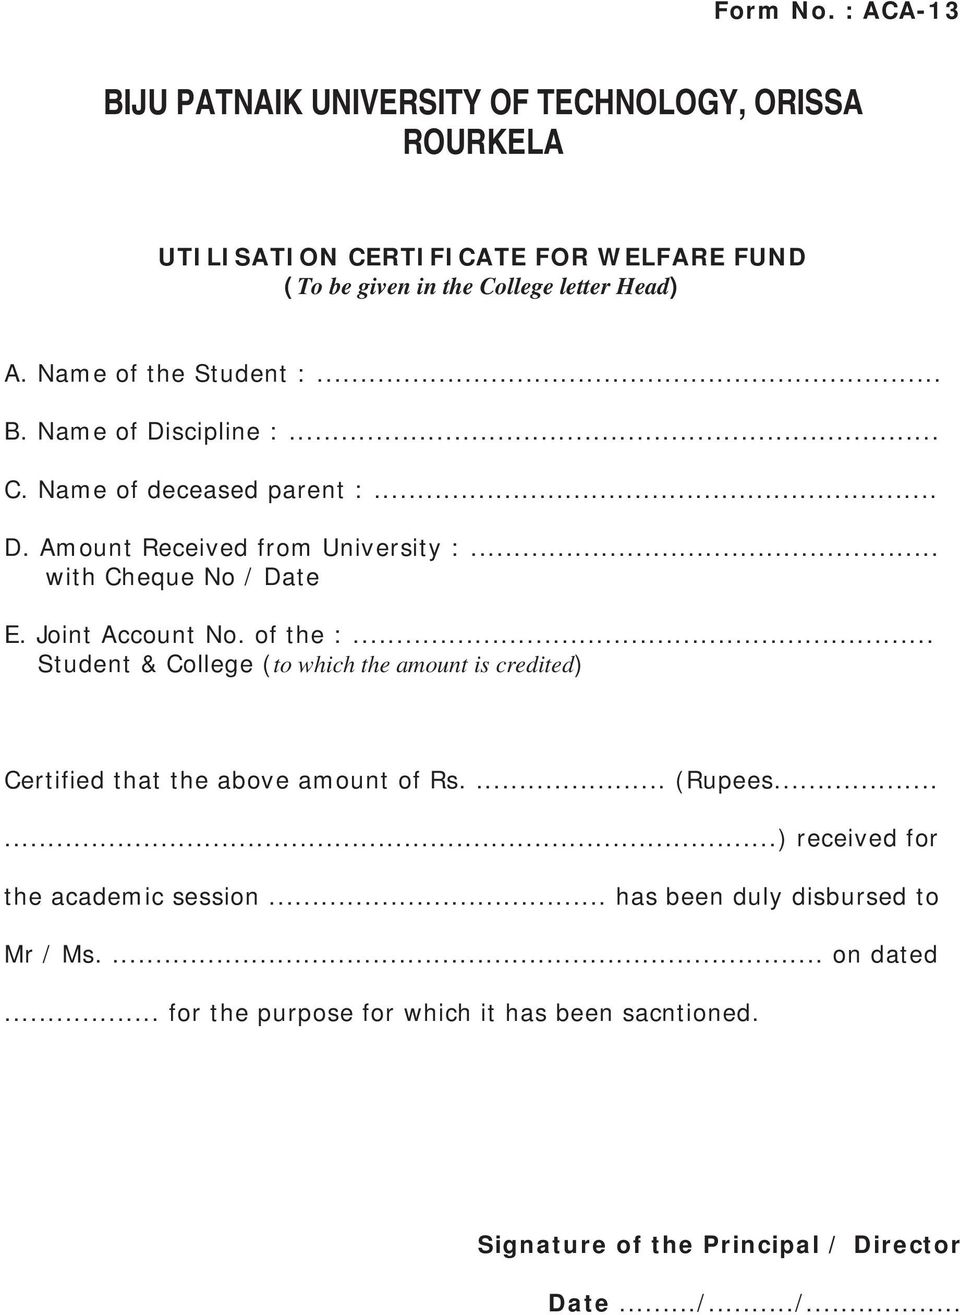 of the :... Student & College (to which the amount is credited) Certified that the above amount of Rs.... (Rupees.